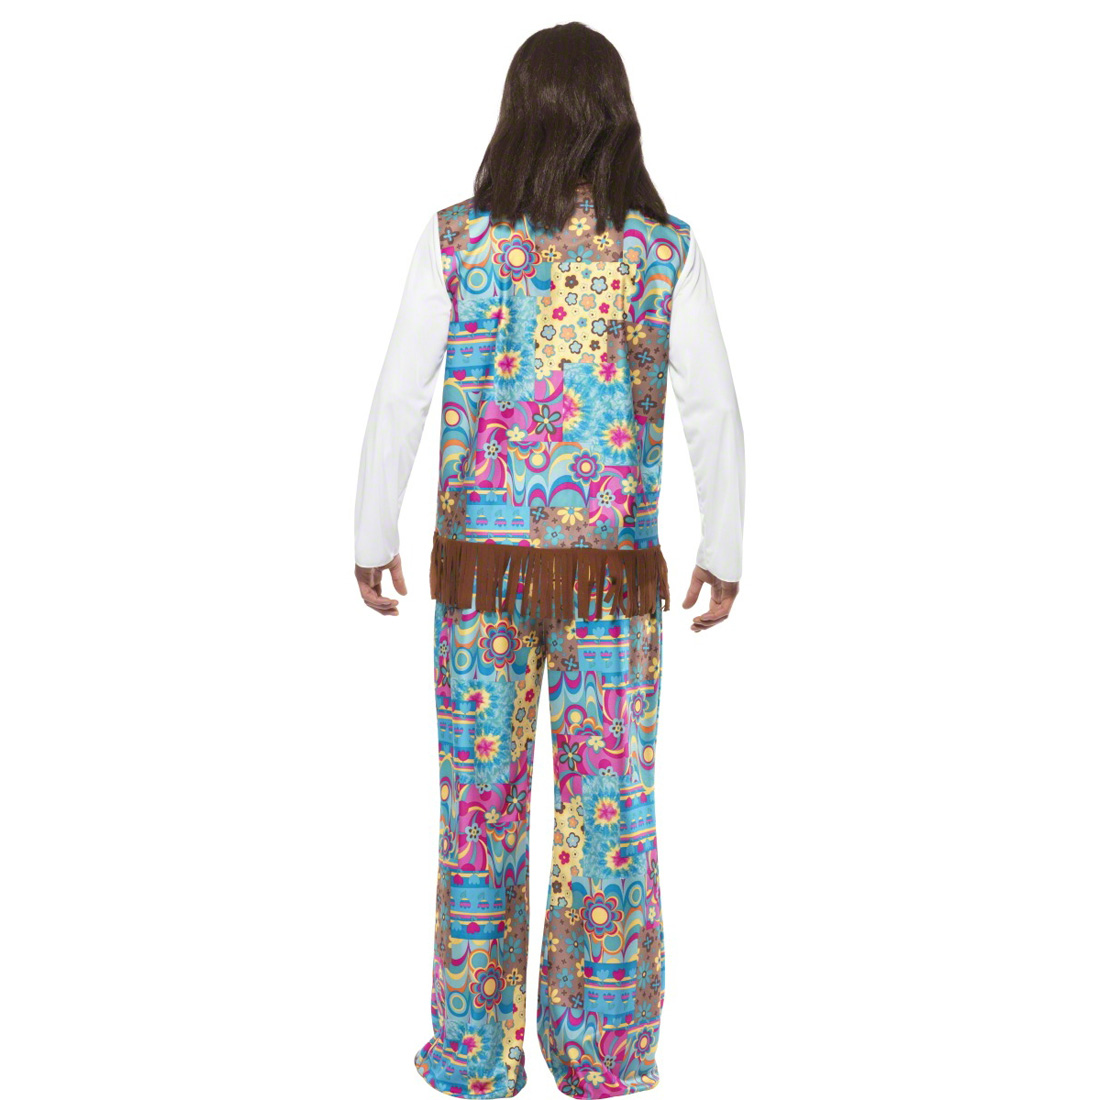 70er jahre hippie kost m herren flower power outfit hippiekost m schlagermove ebay. Black Bedroom Furniture Sets. Home Design Ideas